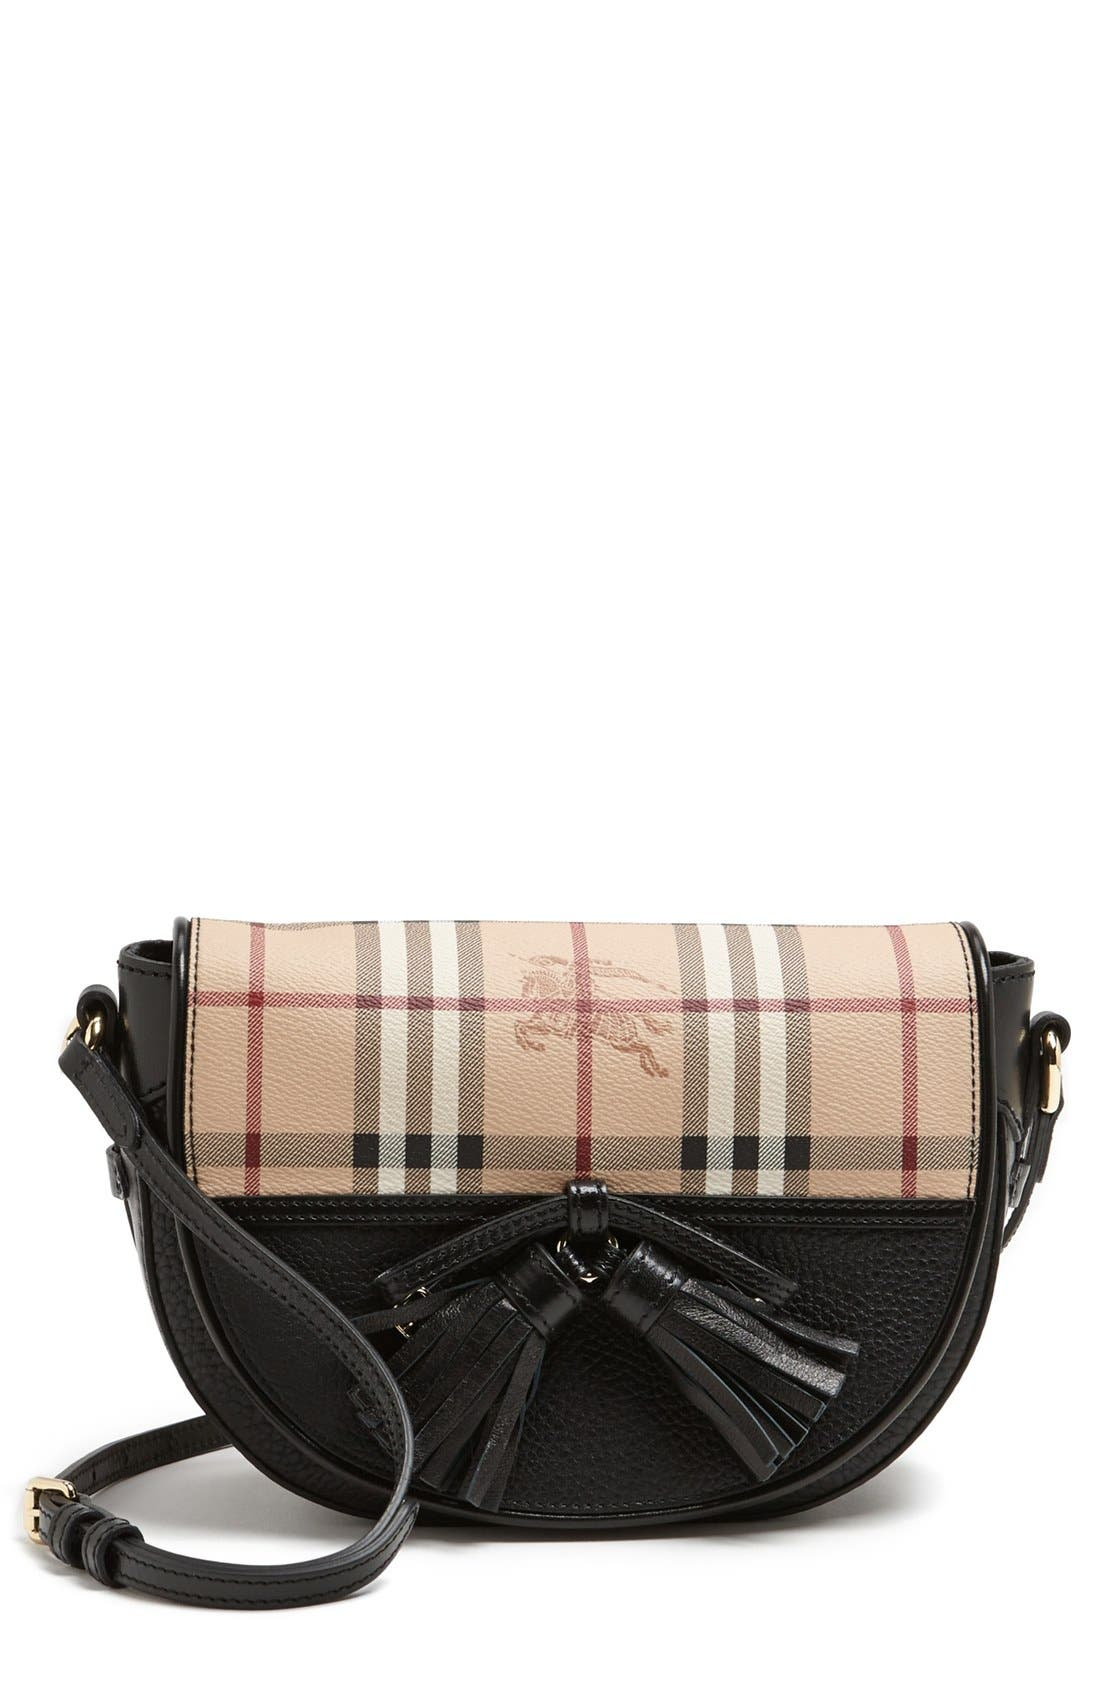 Alternate Image 1 Selected - Burberry 'Small Maydown' Leather Crossbody Bag